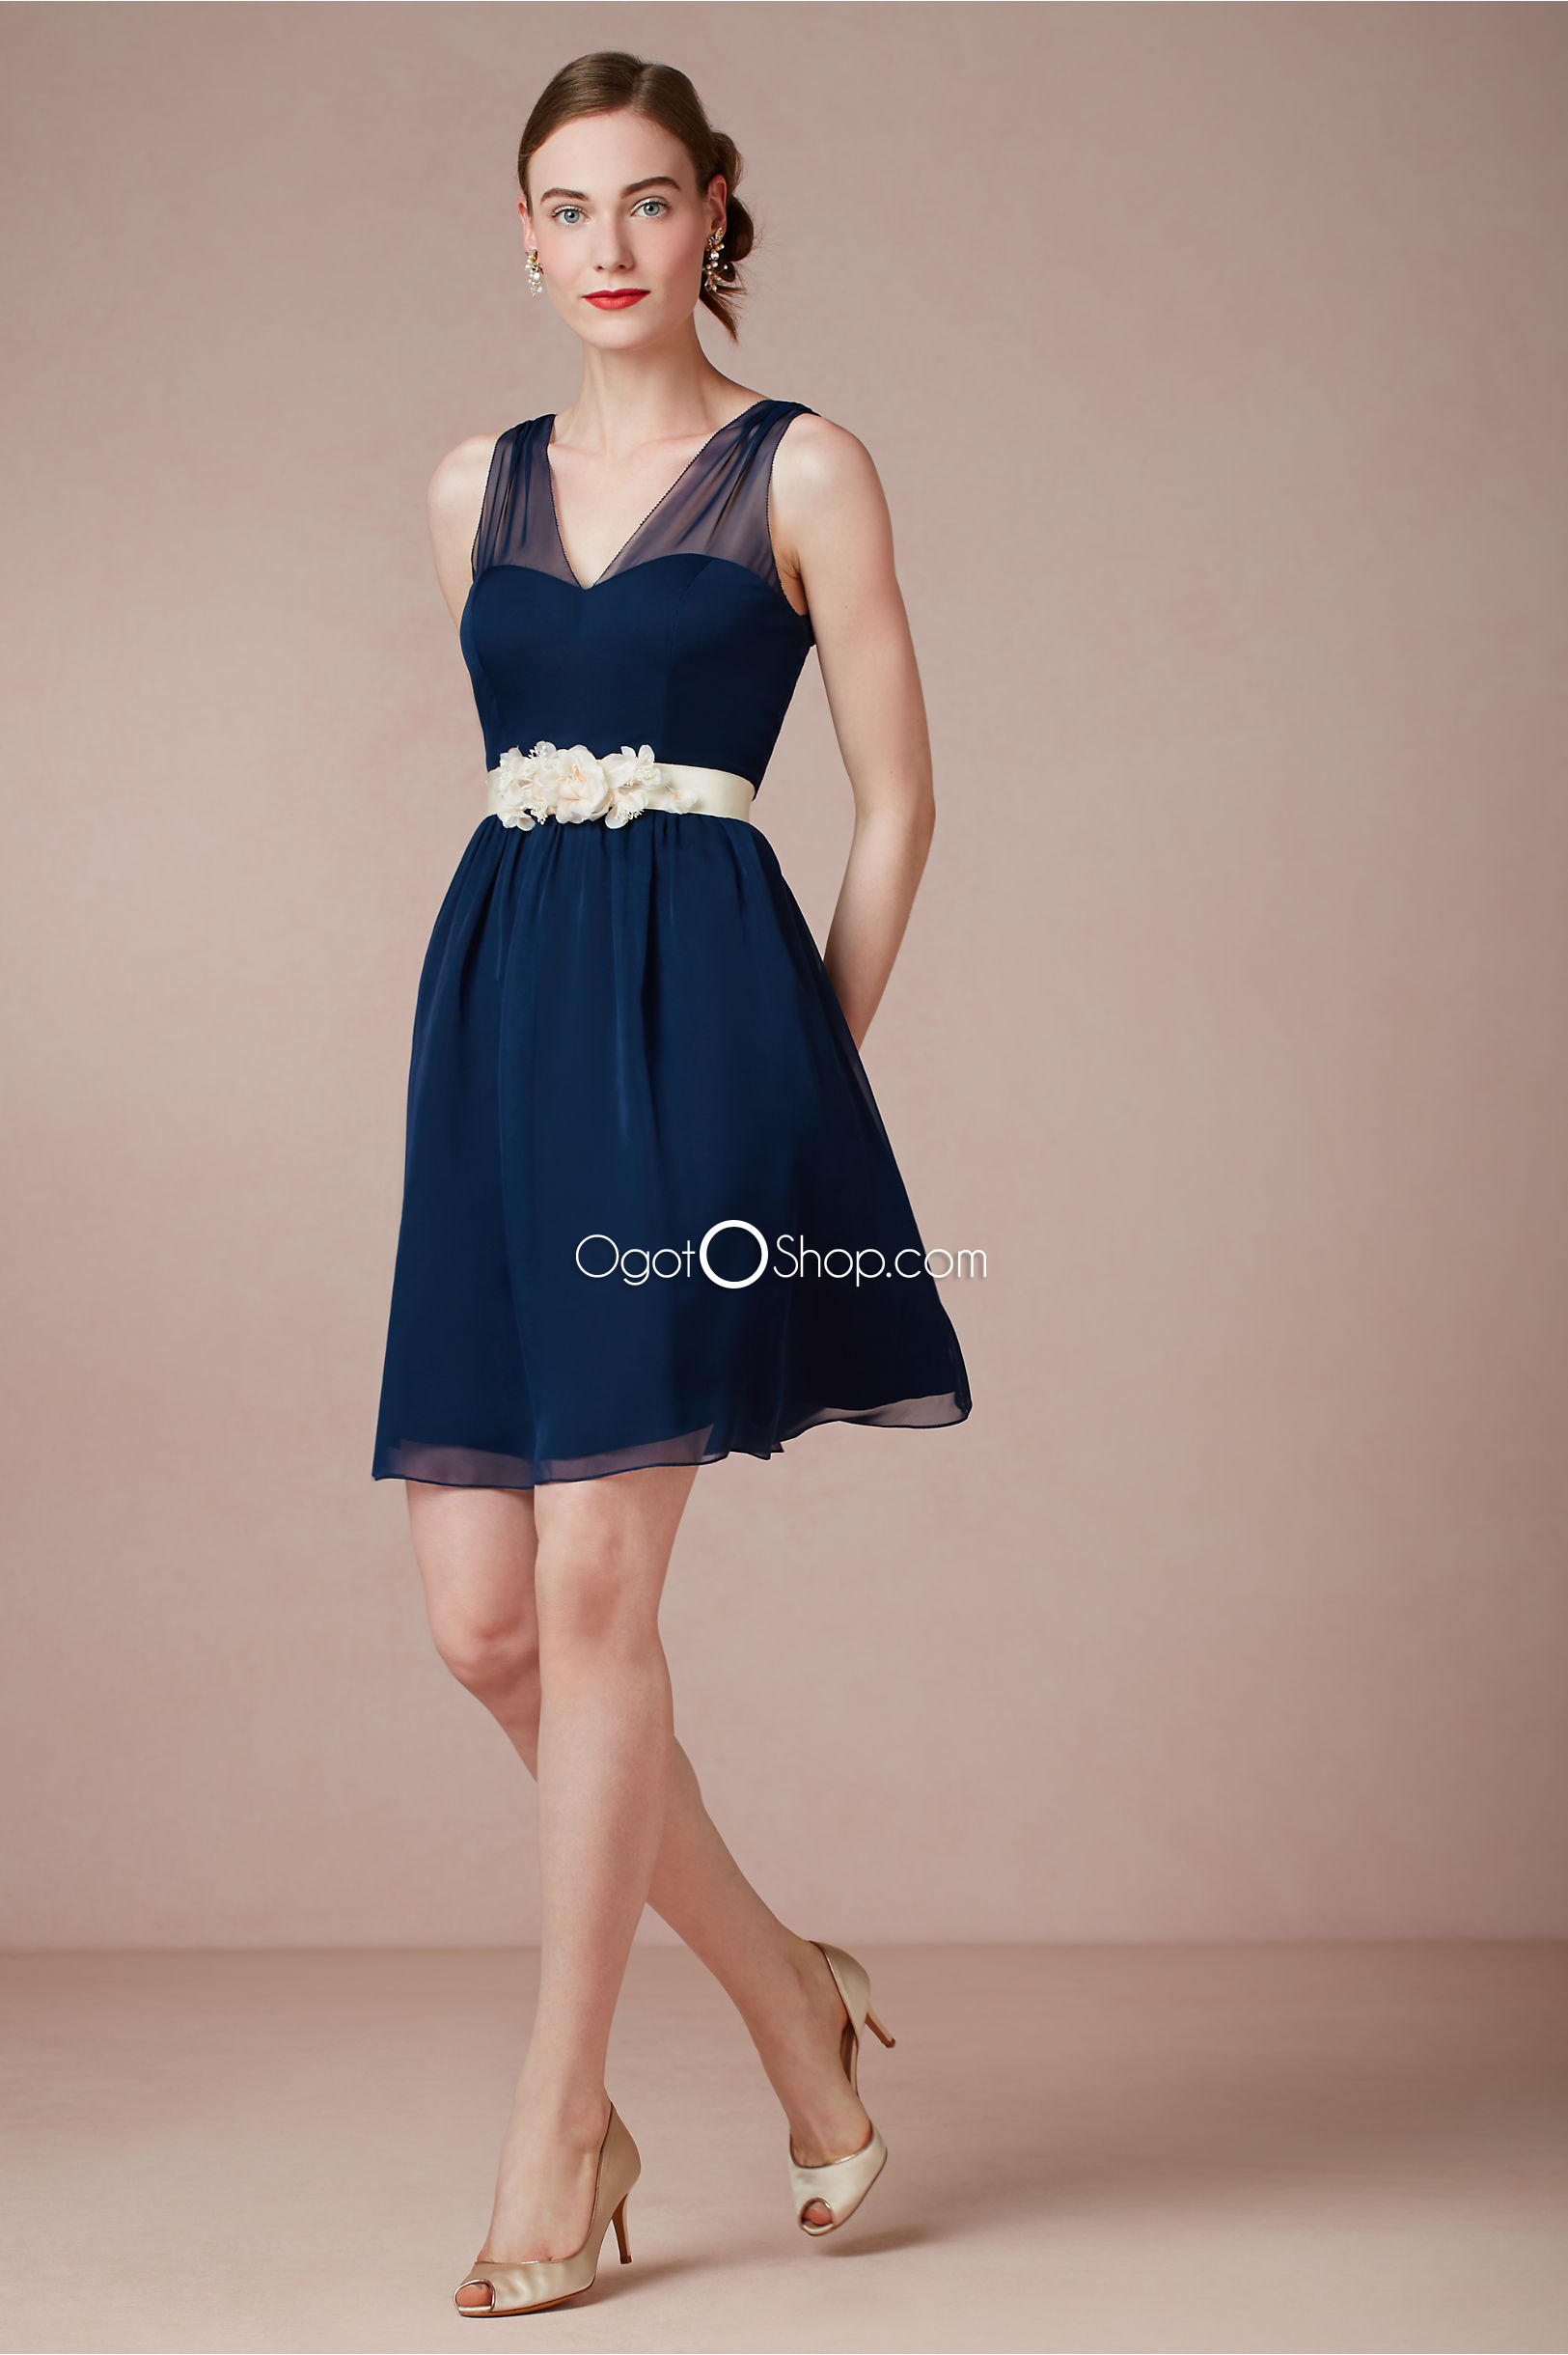 Gorgeous navy blue bridesmaid dresses to inspire you for Navy blue dresses for weddings